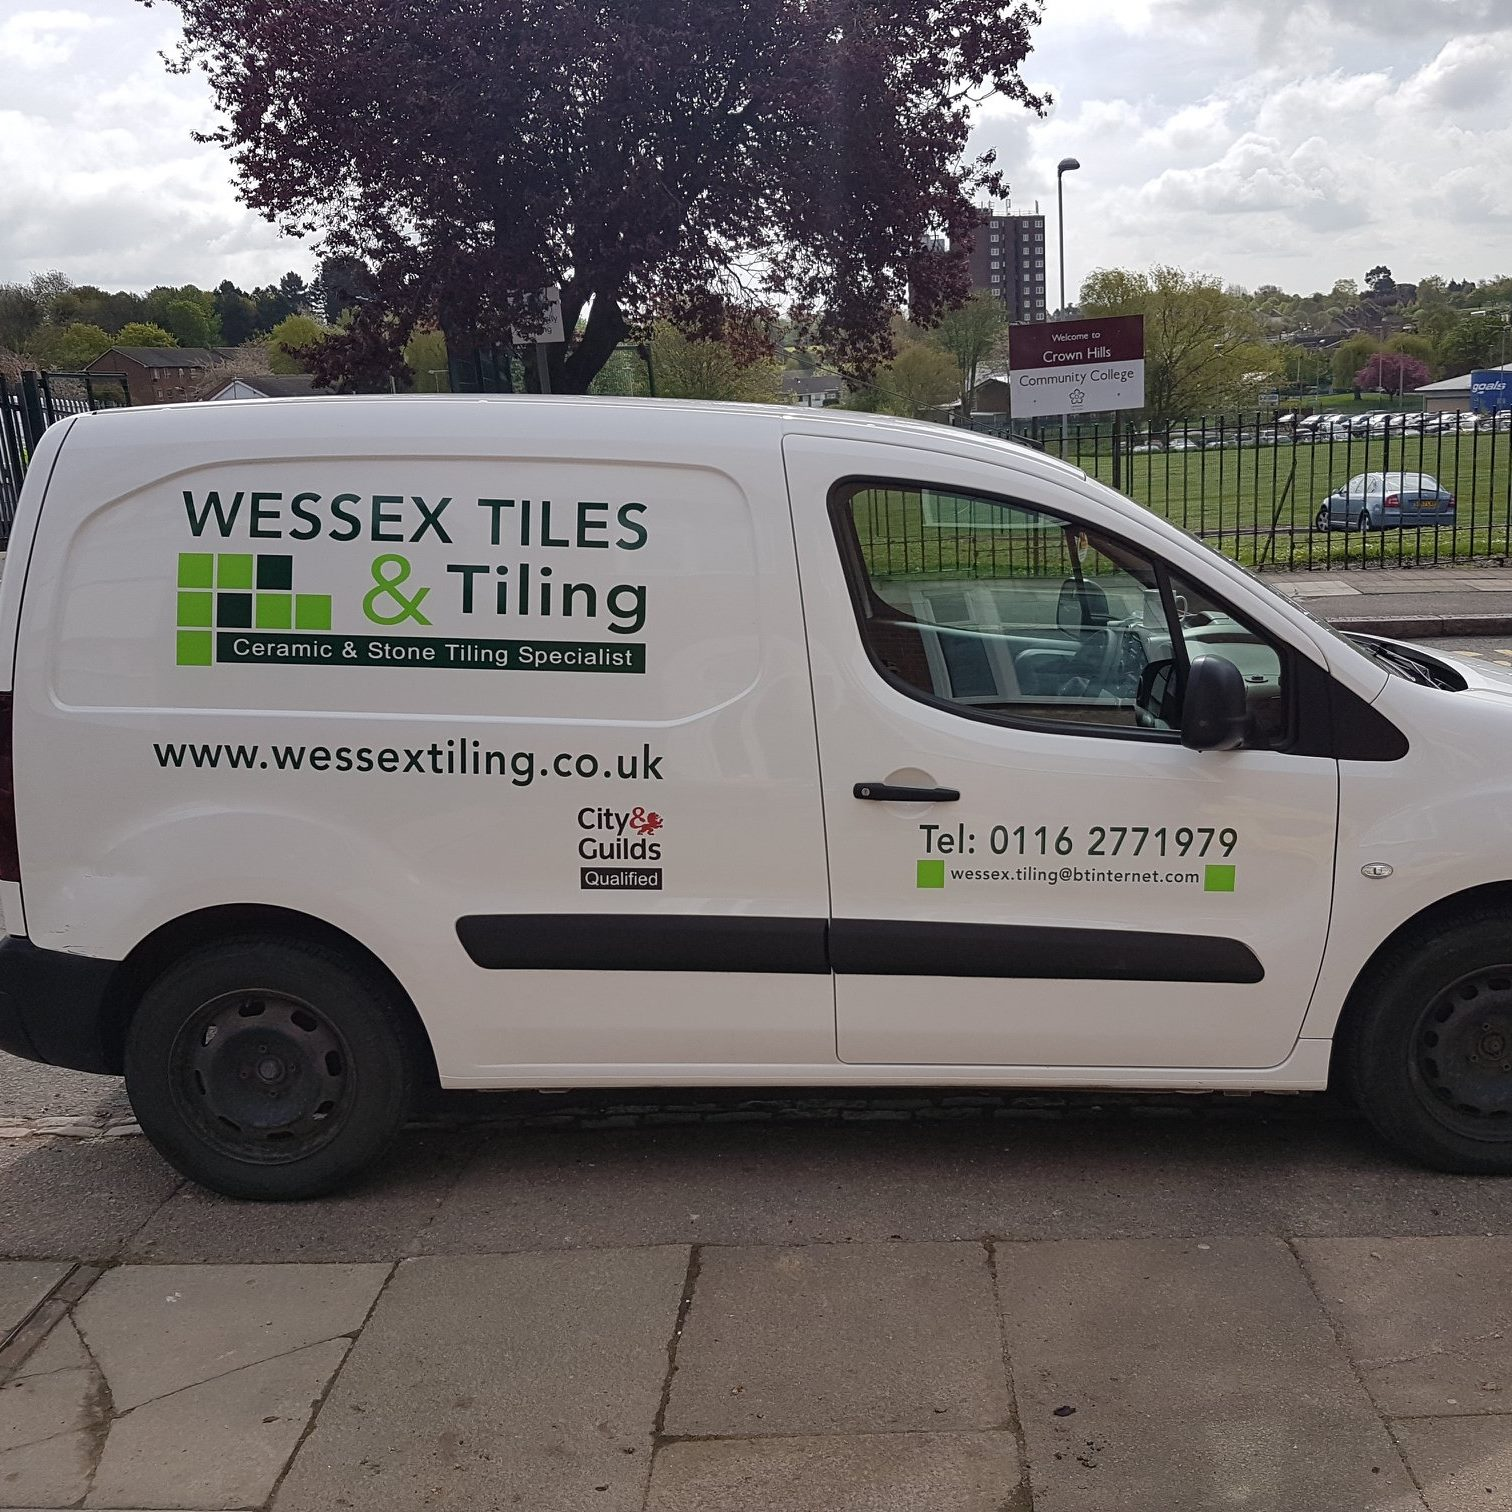 Wessex Tiles and Tiling